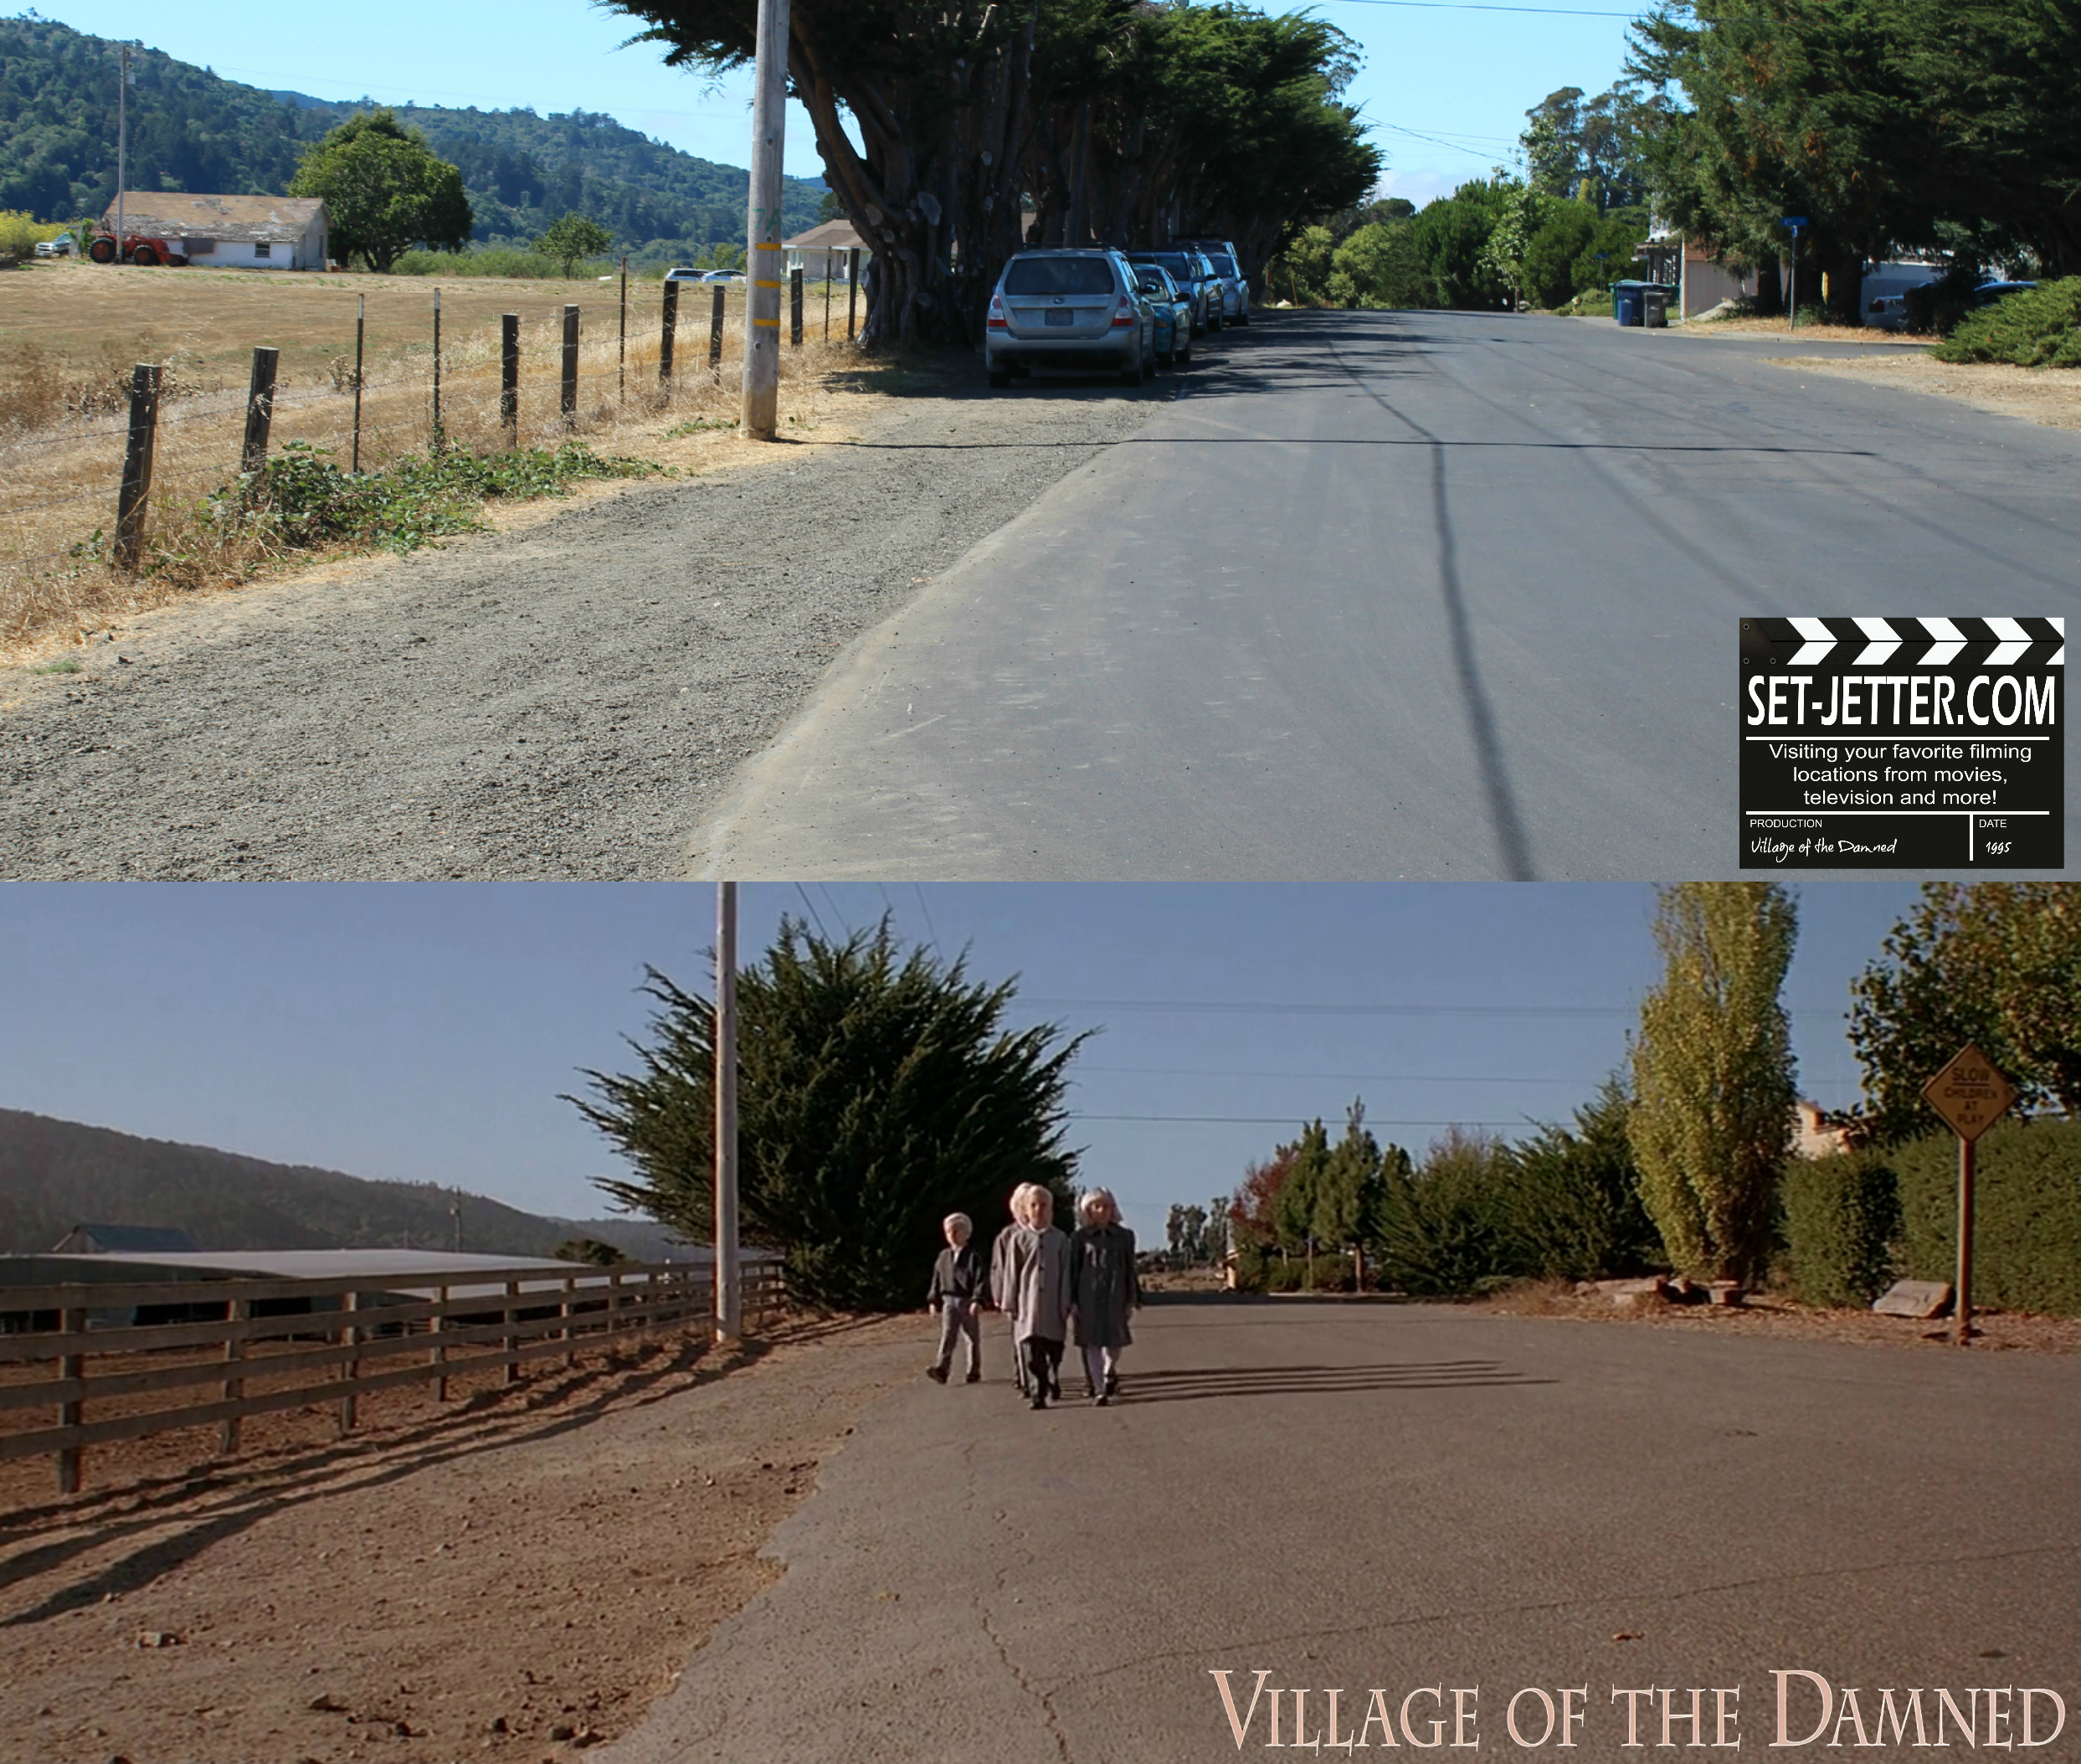 Village of the Damned comparison 212.jpg